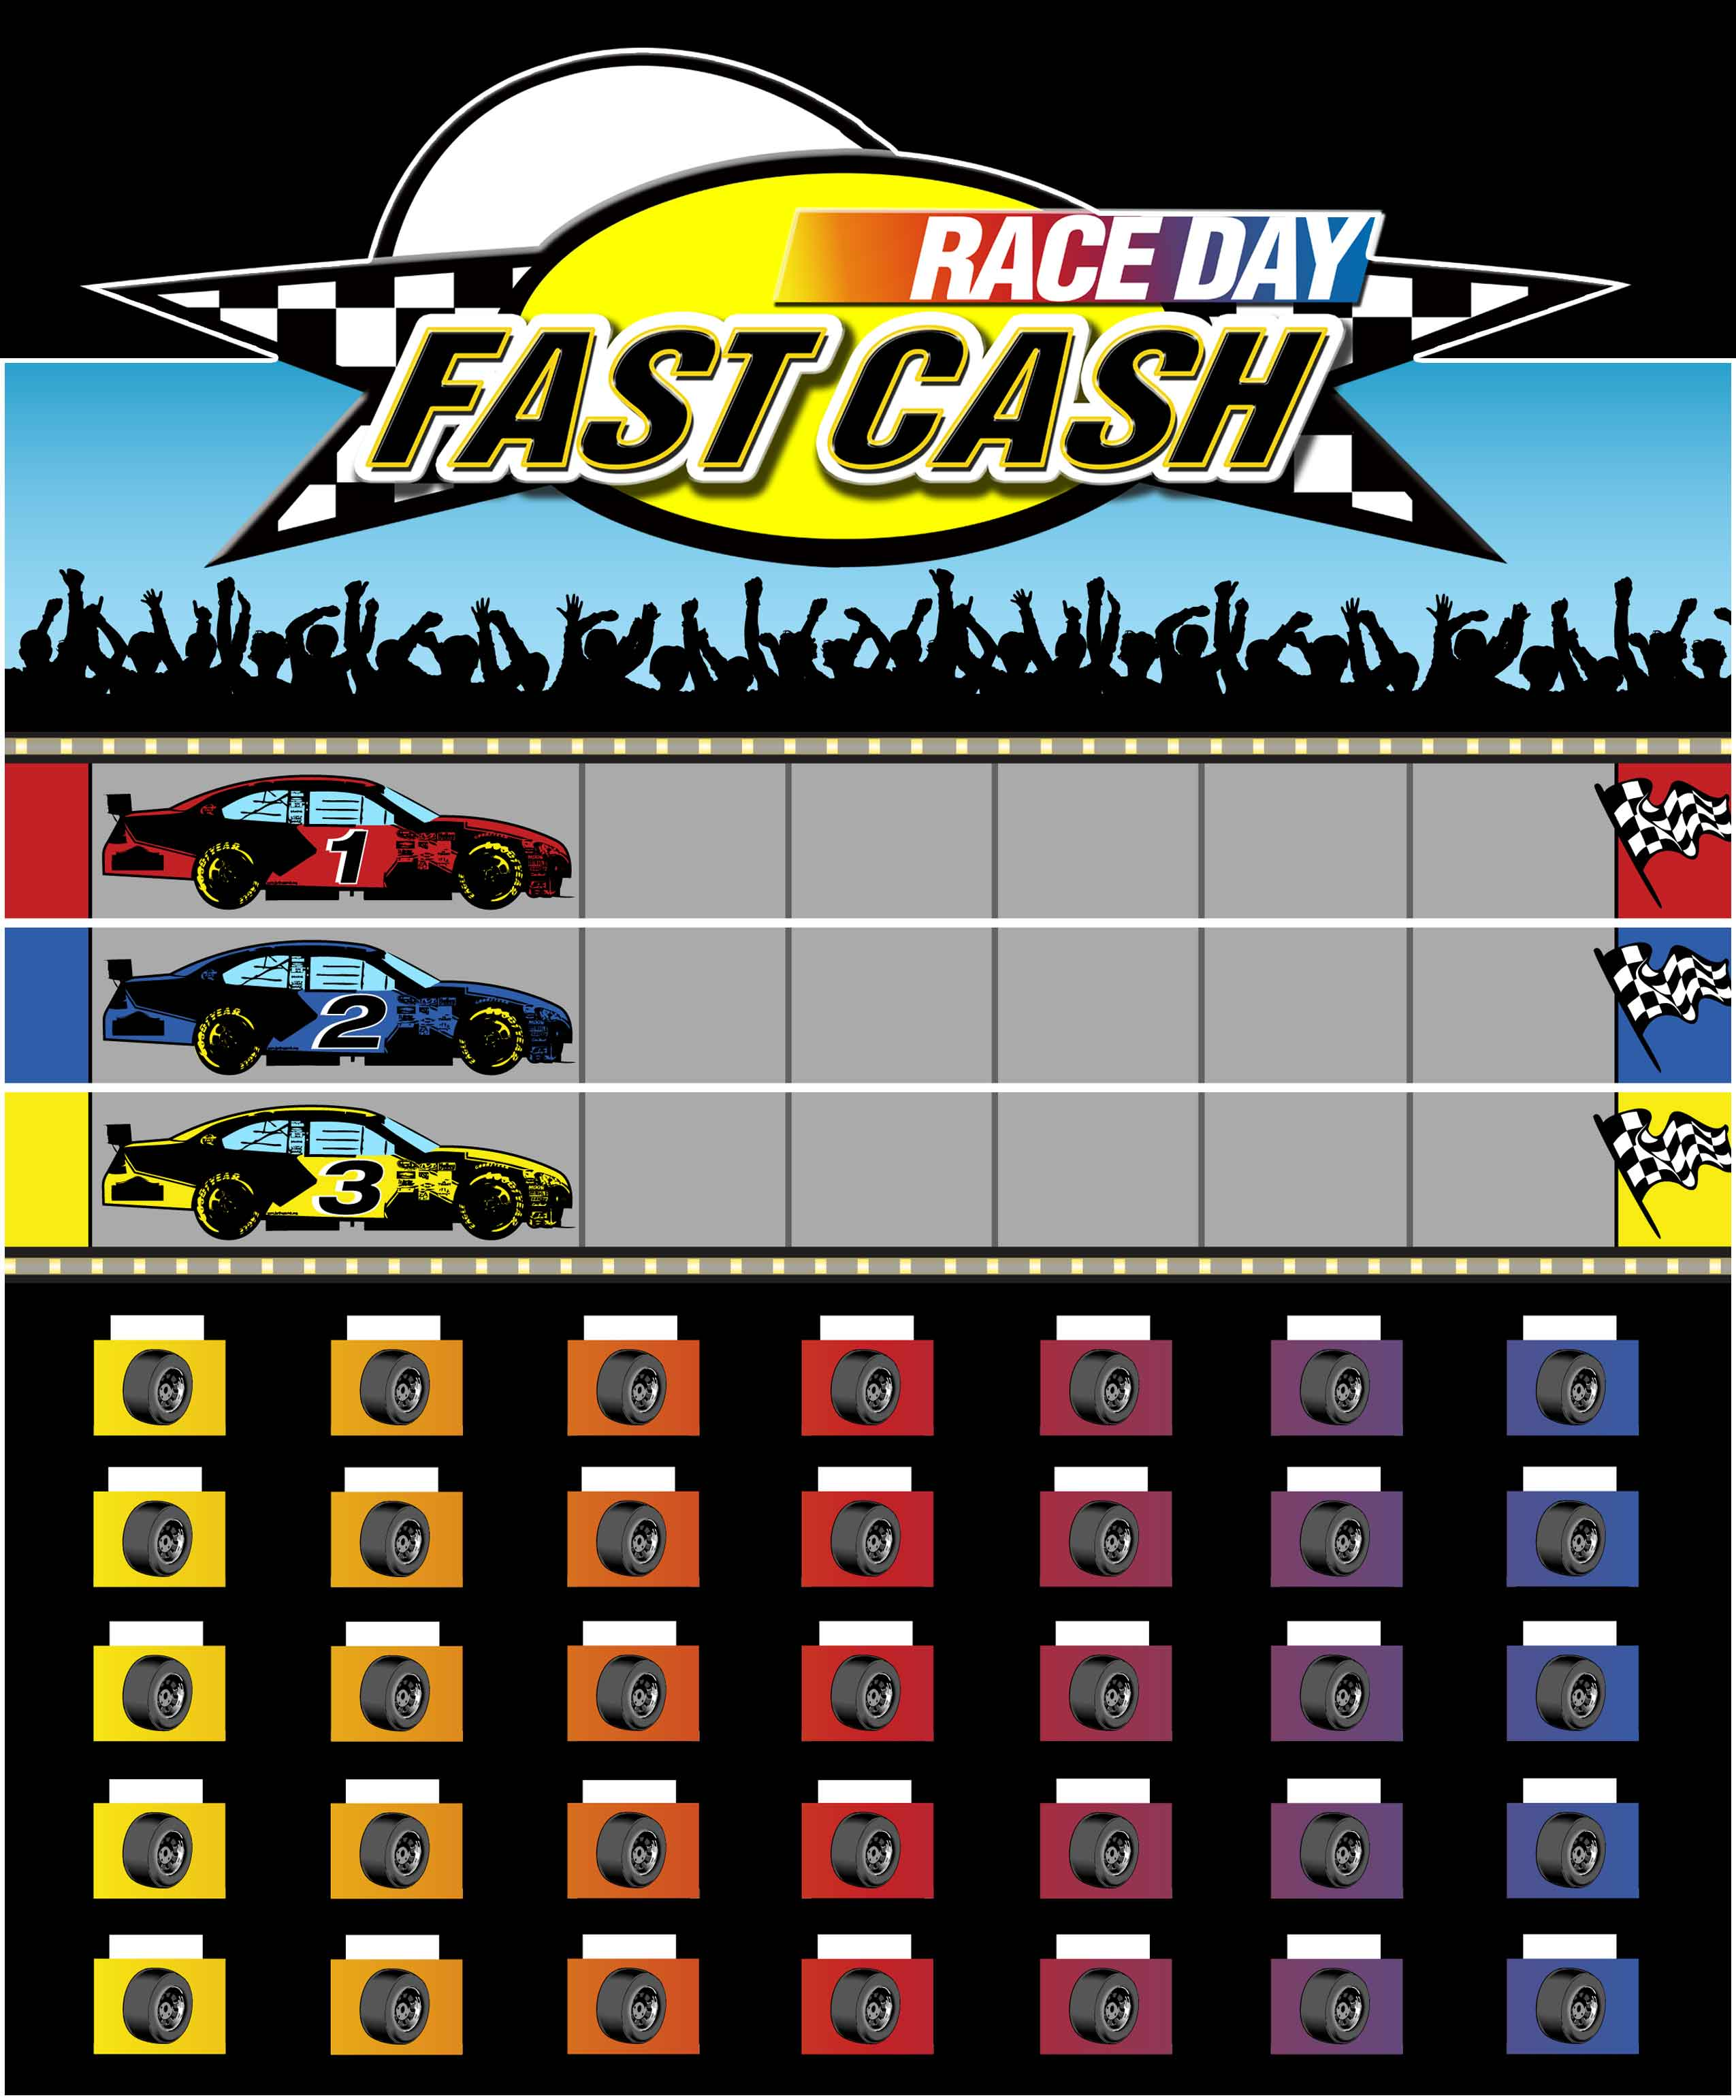 Race Day Fast Cash Game Board Nascar Promotion